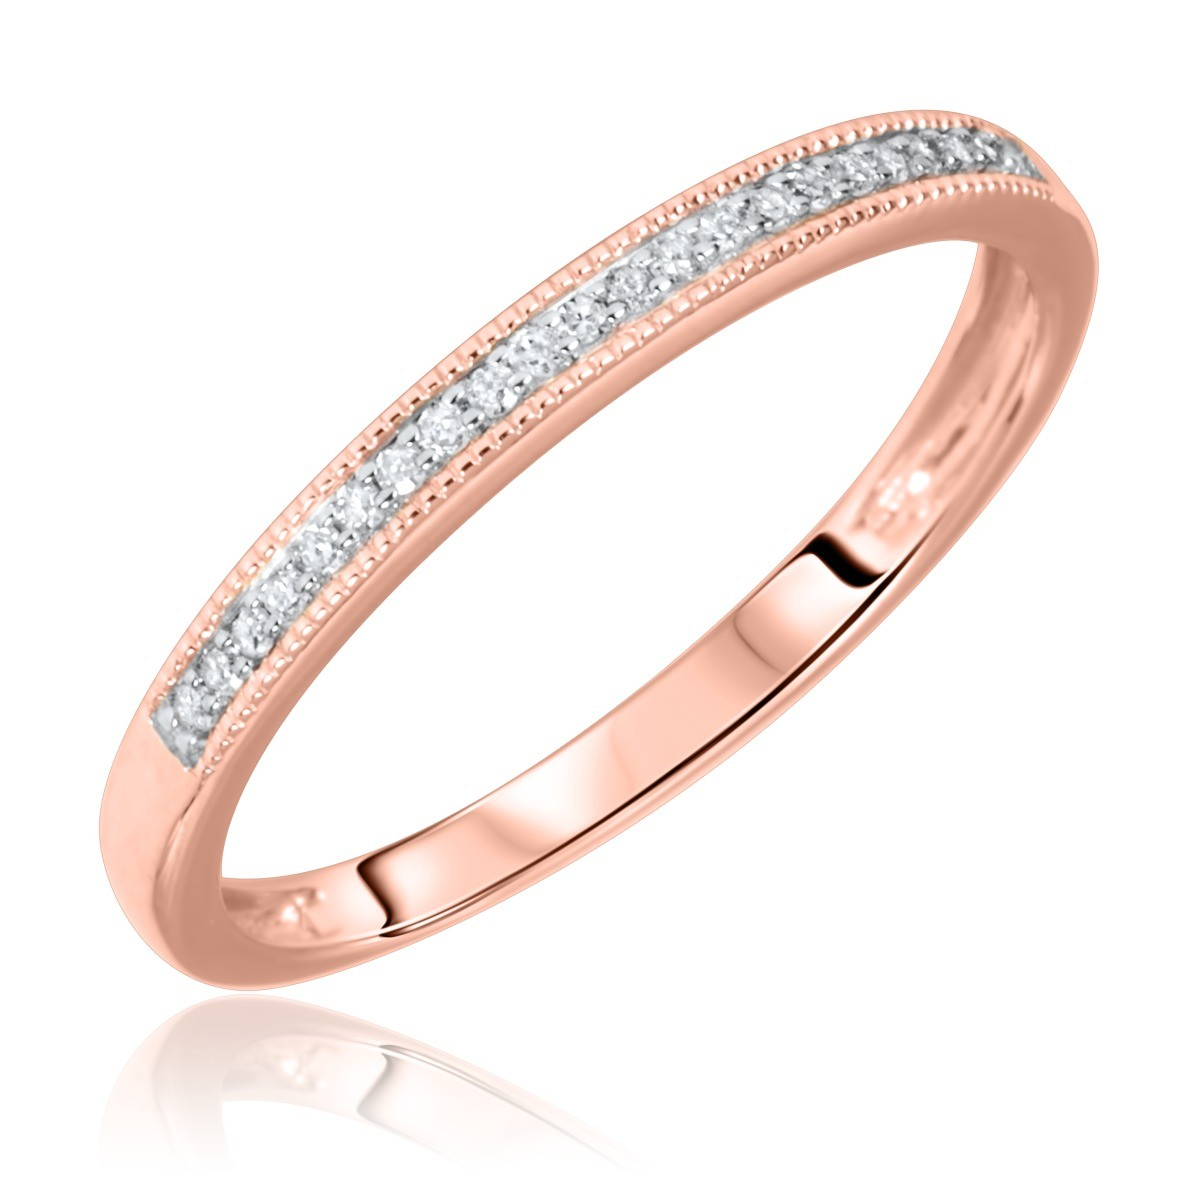 1/15 Carat T.W. Round Cut Diamond Ladies Wedding Band 14K Rose Gold